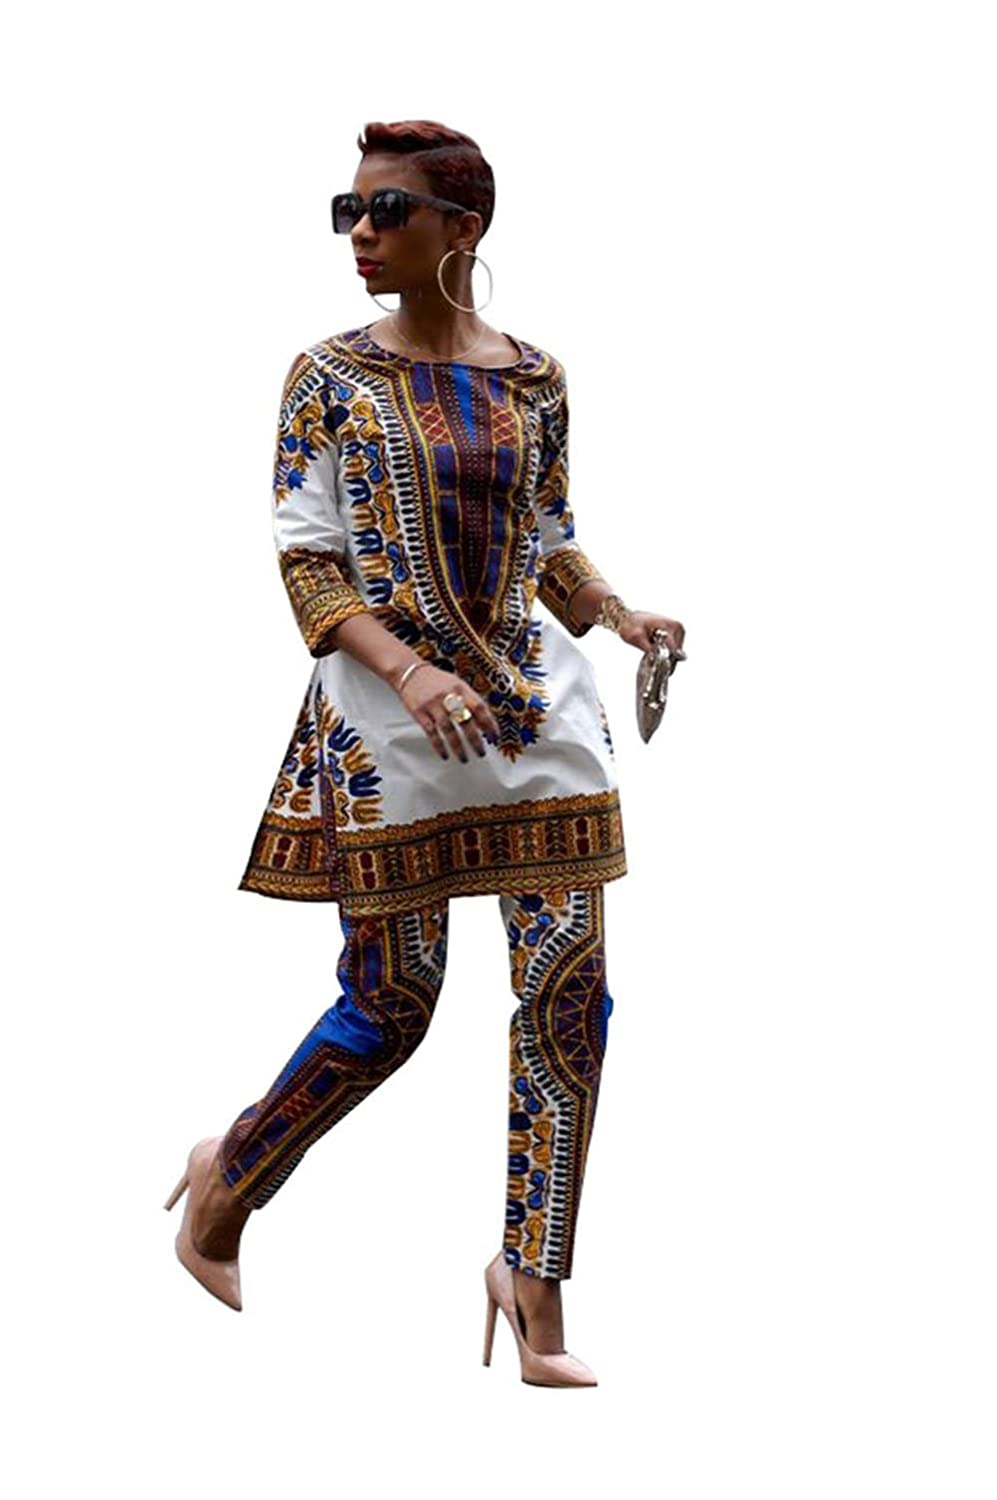 Hisimple African Women Fashion 3//4 Sleeve Casual Dashiki Shirt and Pants Set Outfit Suit Set